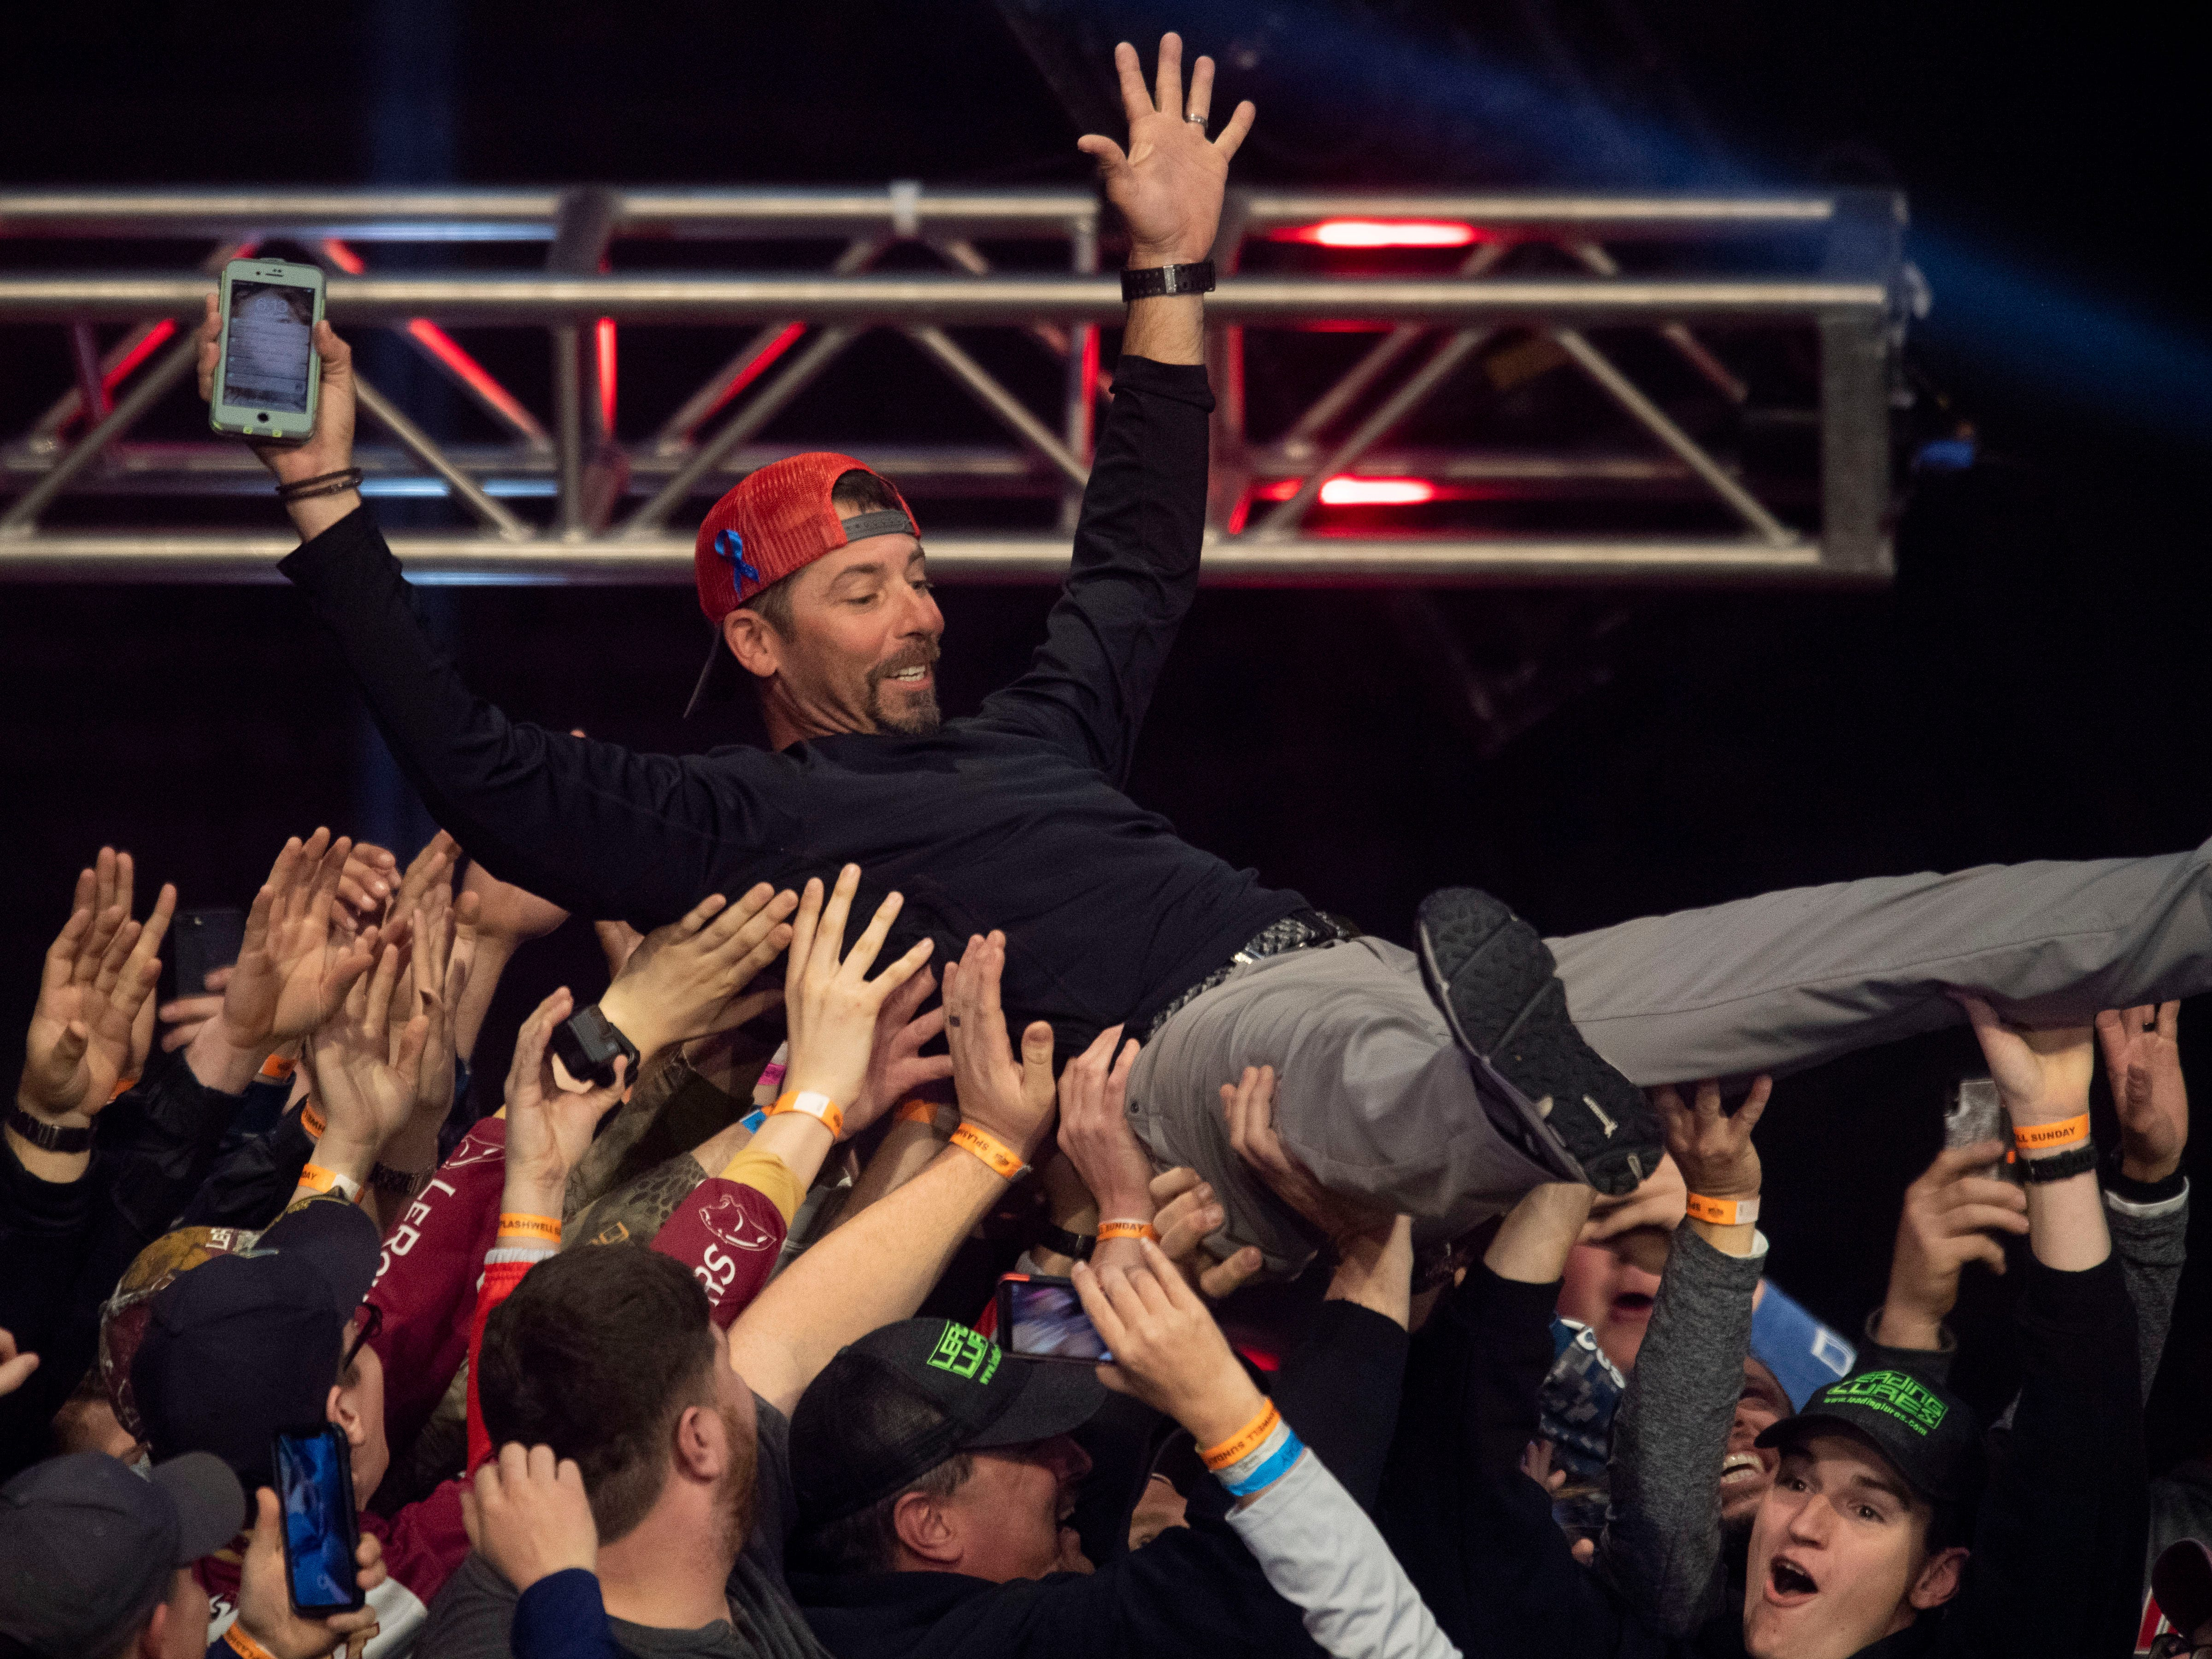 Professional fisherman Michael Iaconelli crowd surfs during the weigh-in on the last day of the Bassmaster Classic at Thompson-Boling Arena on Sunday, March 17, 2019. Iaconelli came in 4th place in the competition with a total catch weight of 42 pounds, 9 ounces.